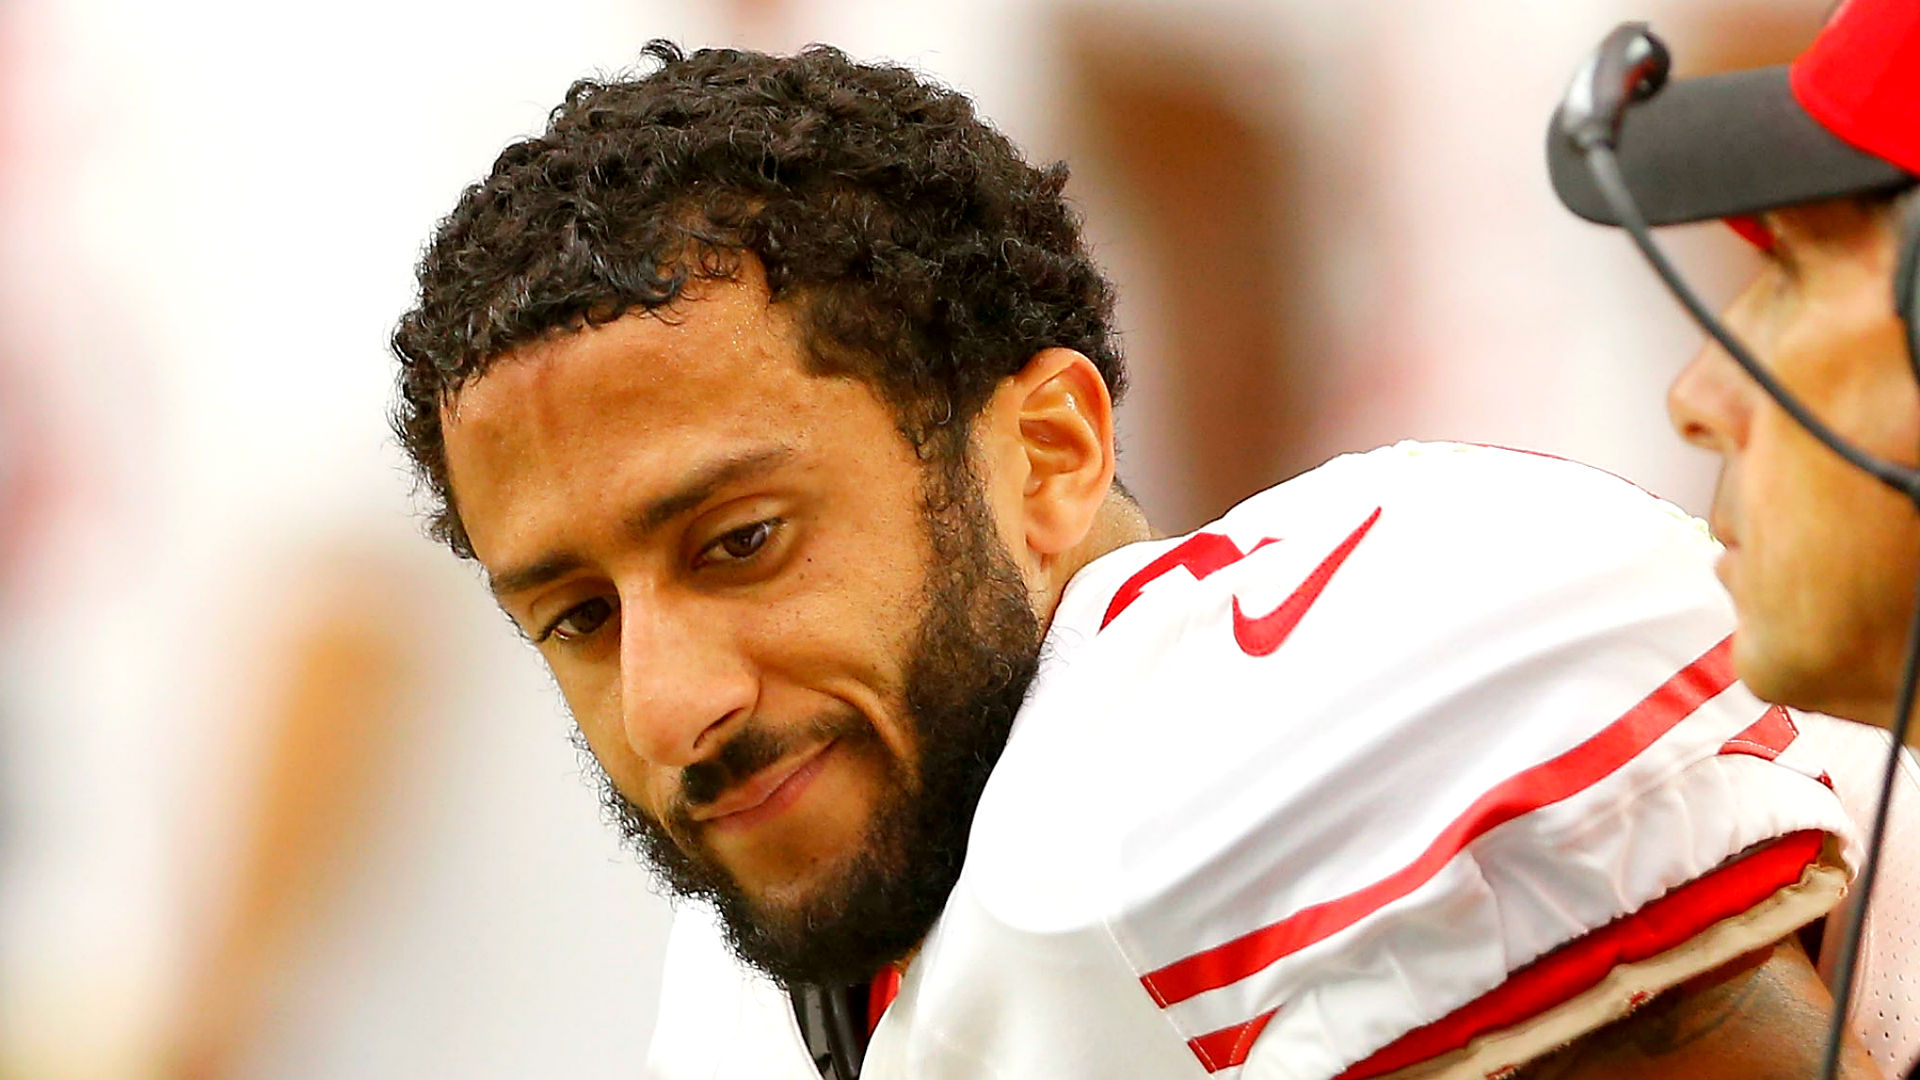 Colin Kaepernick Socks One To Police